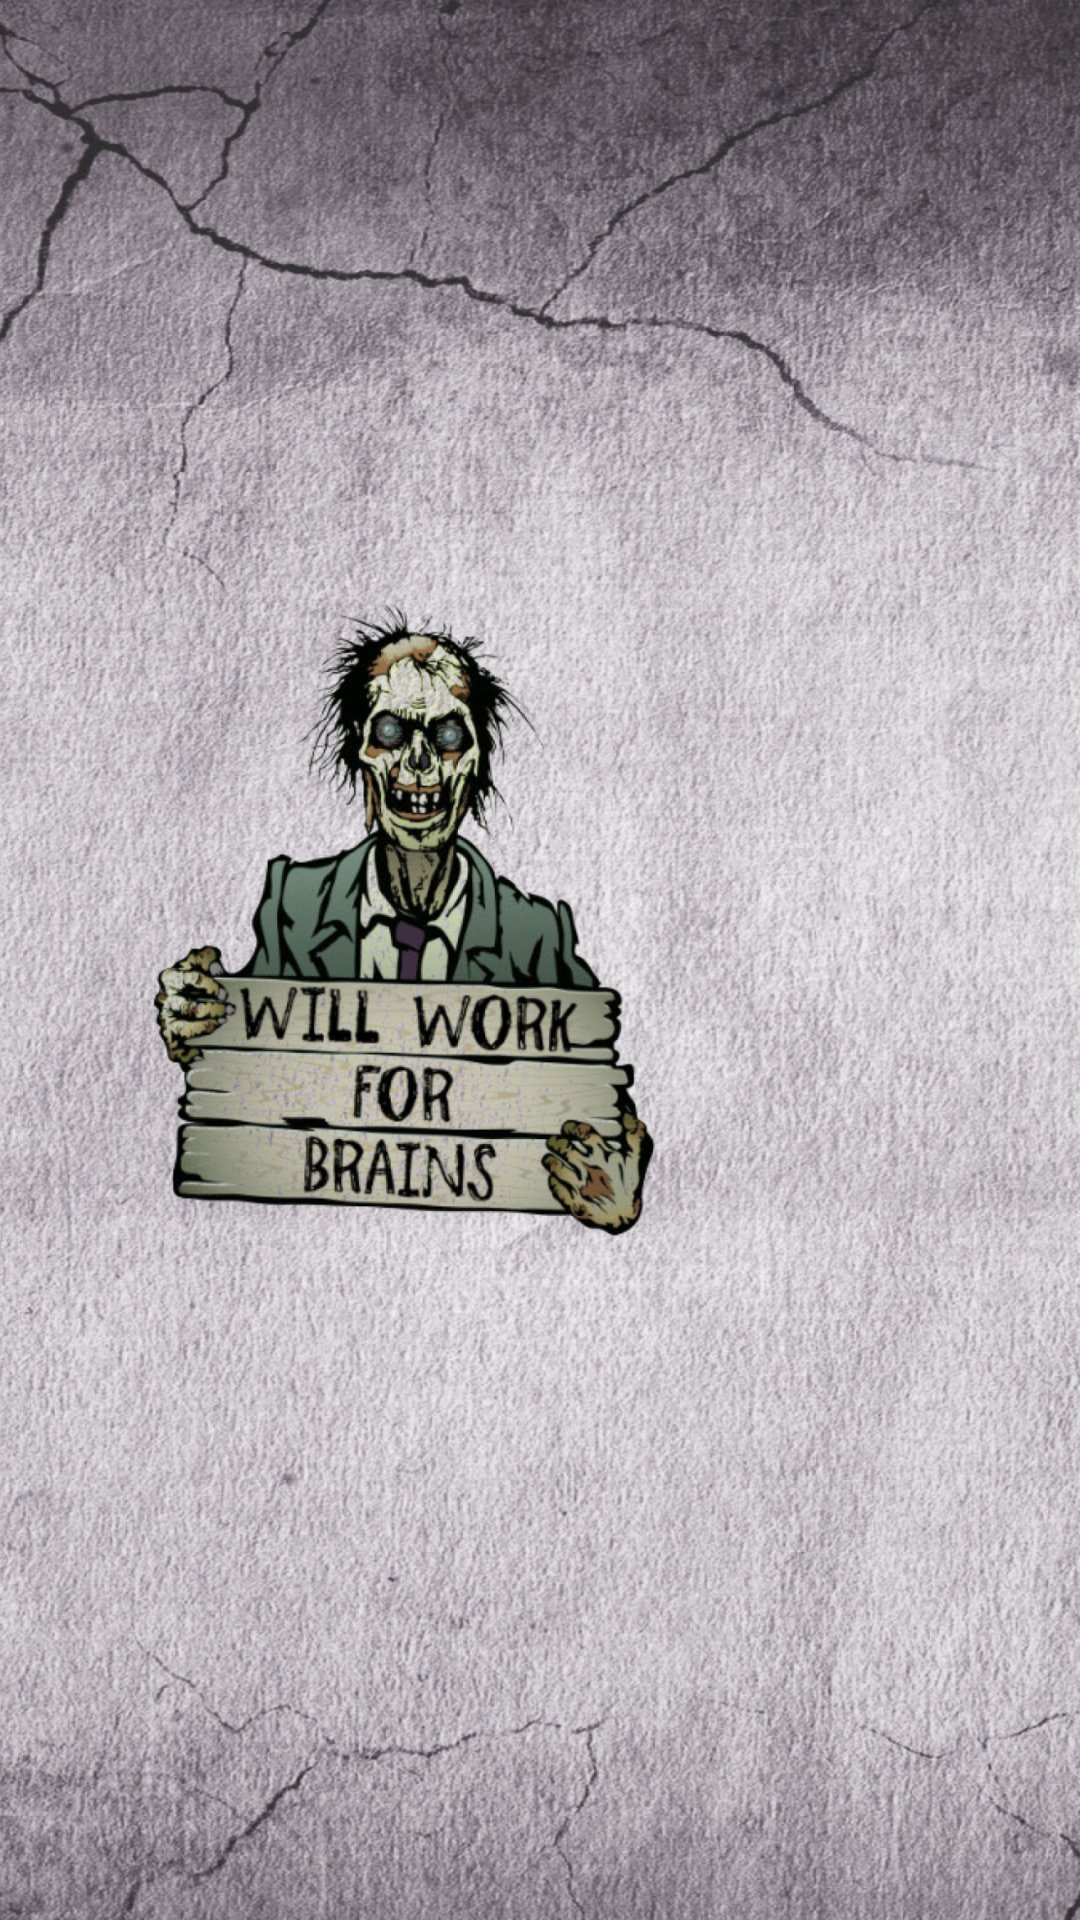 Art Zombies With A Sign